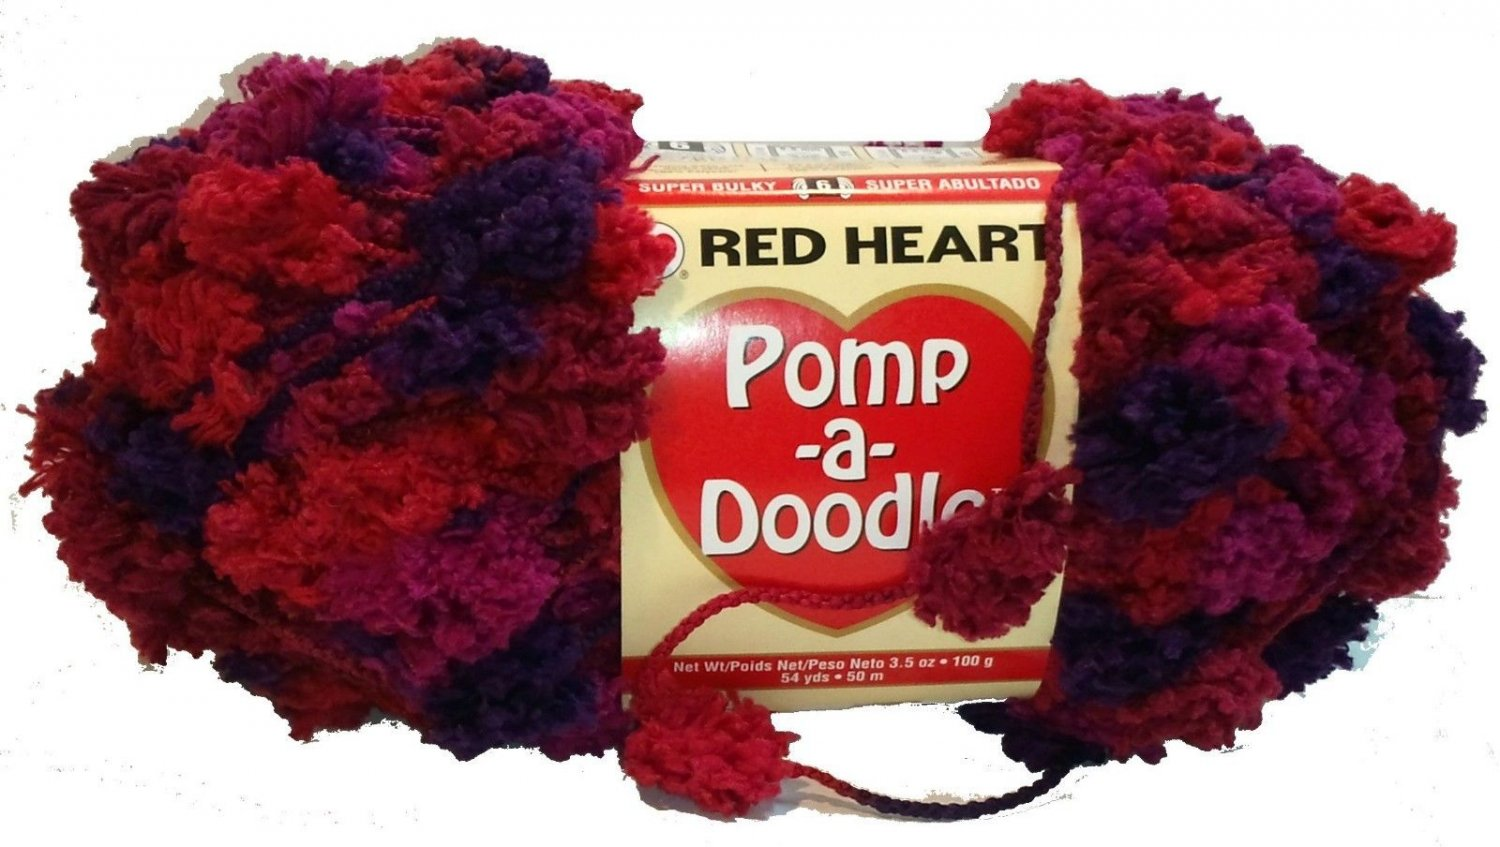 Pomp A Doodle Yarn Red Heart 3.5 ounces 54 yards GrapeBerry 9544 Super Bulky 6 Pom Pom Red Hot Pink